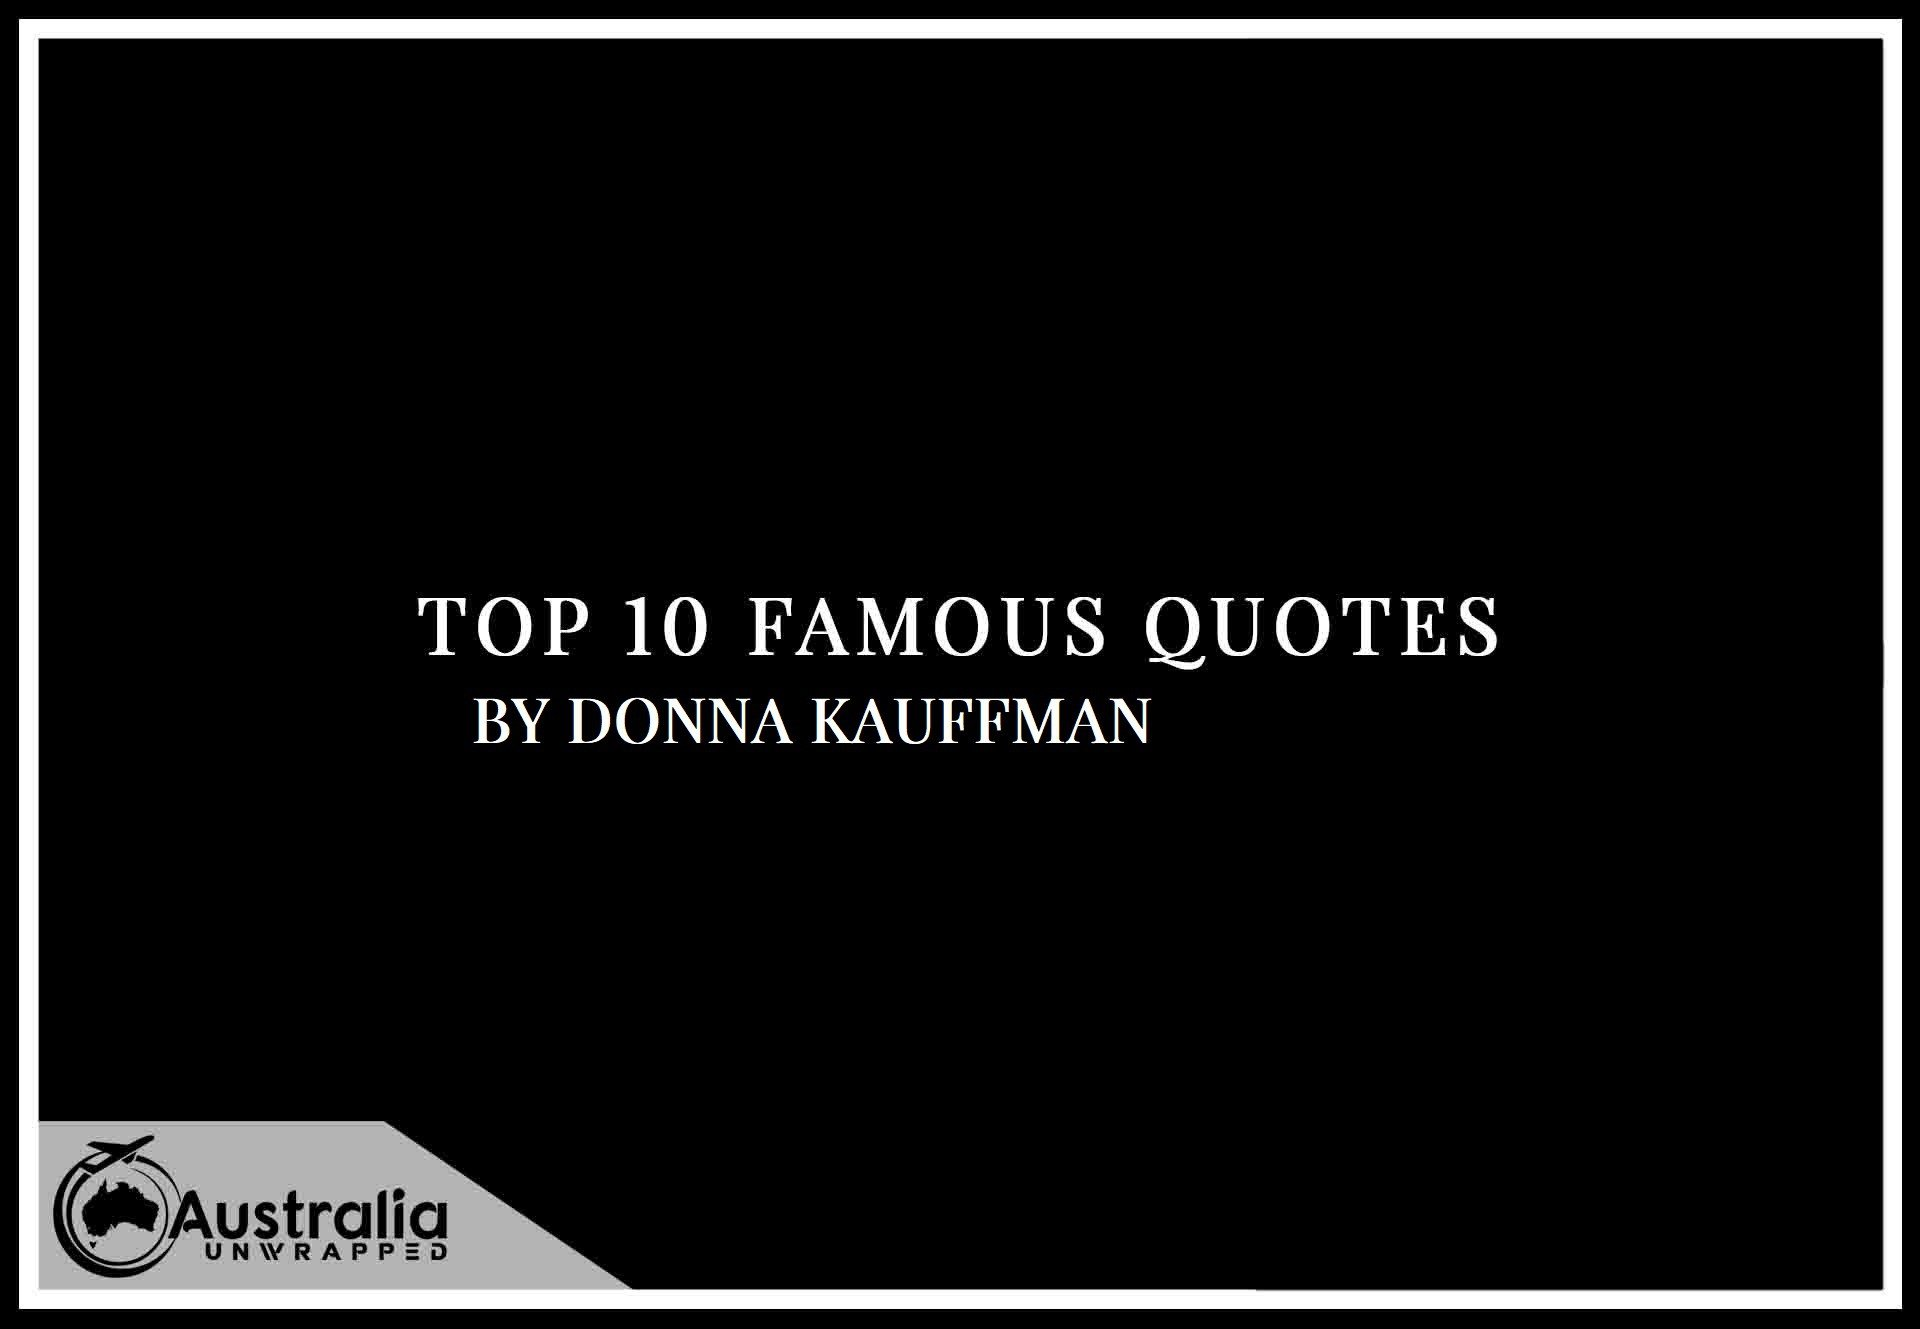 Top 10 Famous Quotes by Author Donna Kauffman